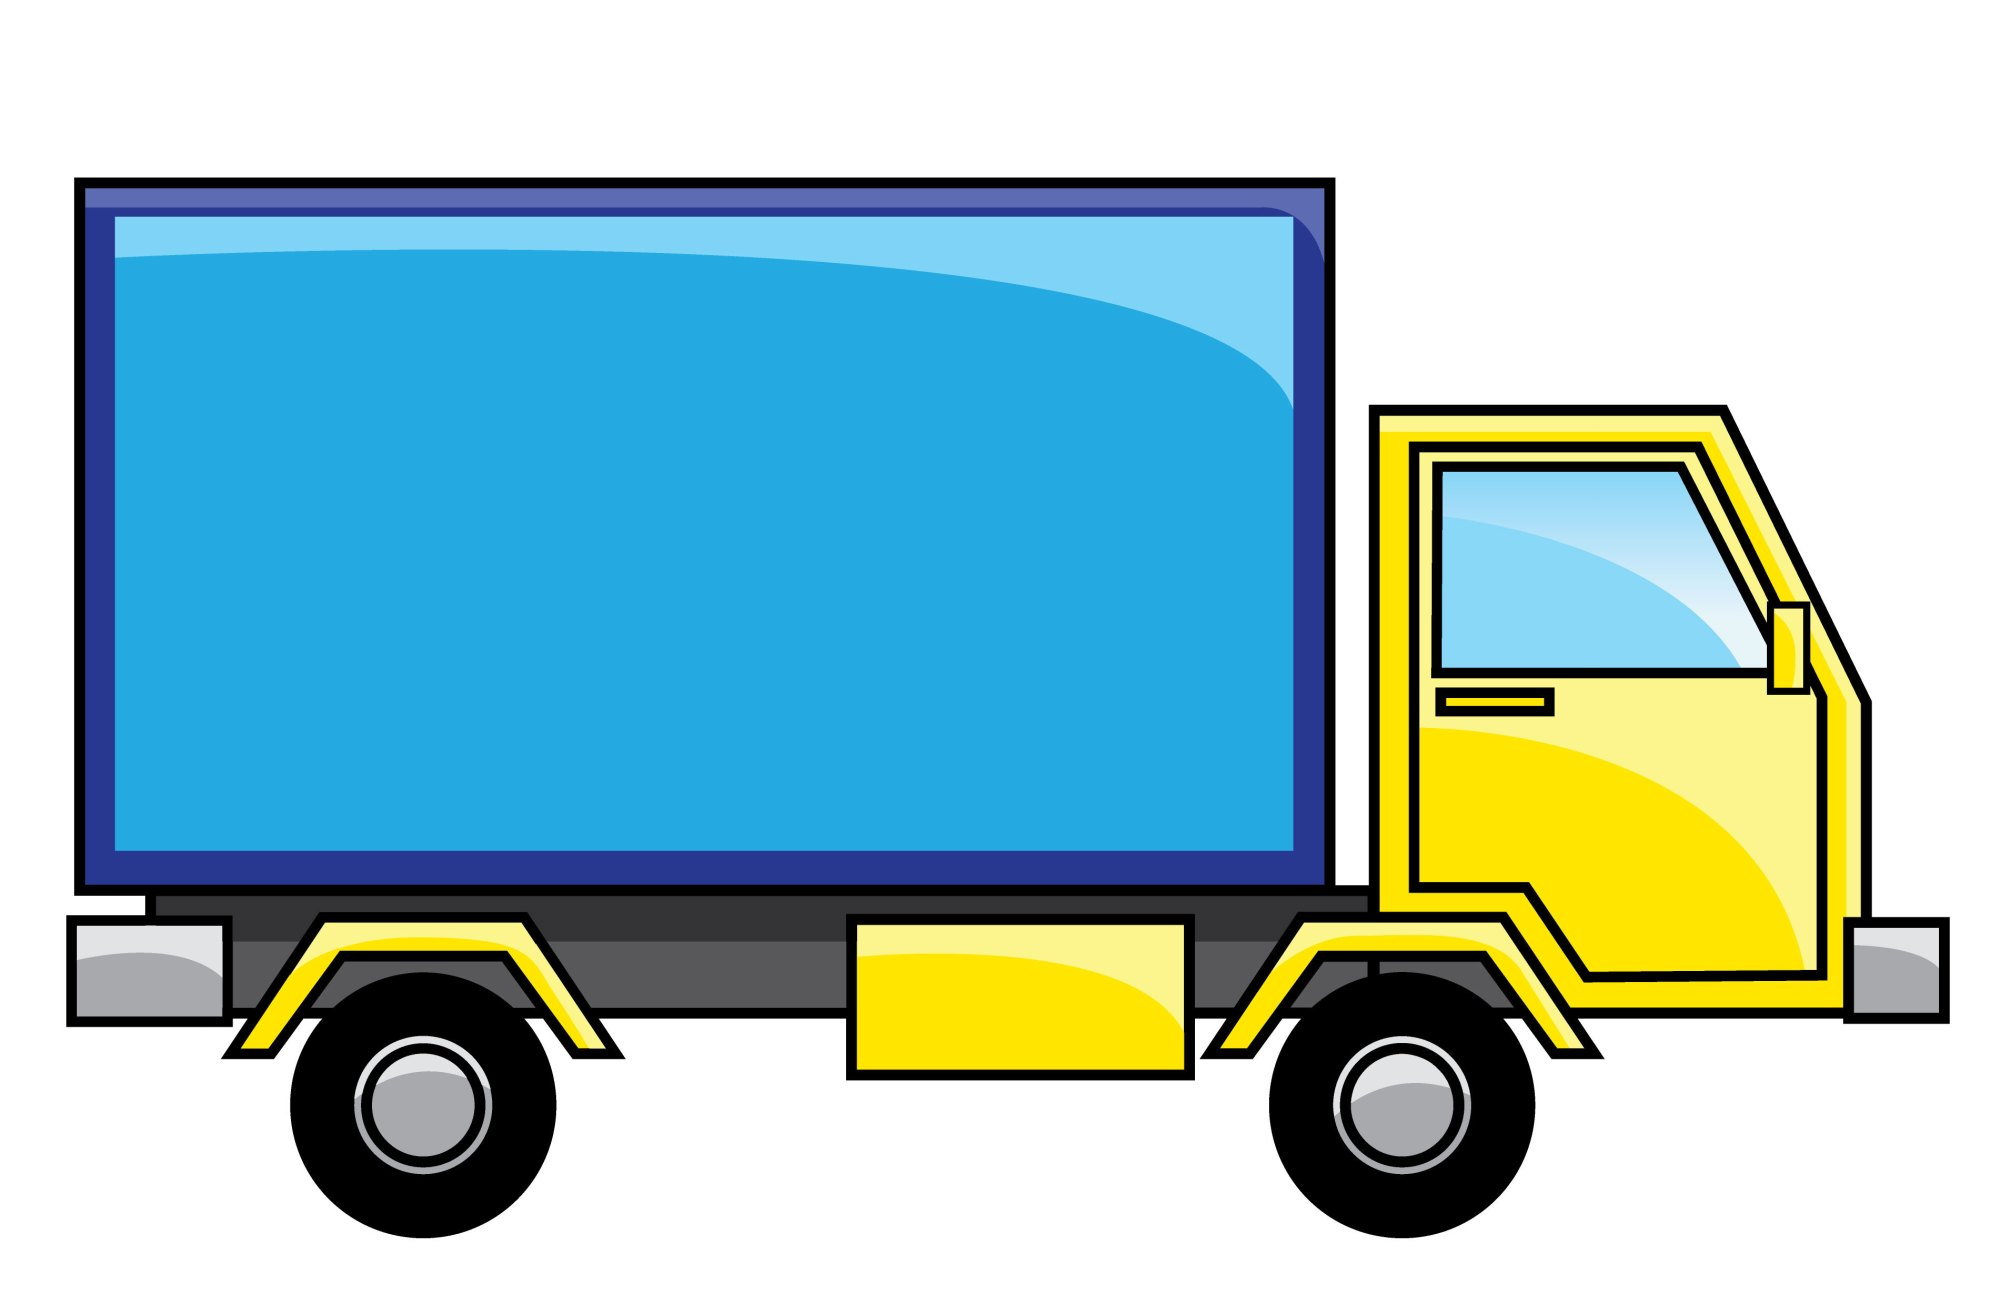 hight resolution of free clipart auto clipart delivery truck image